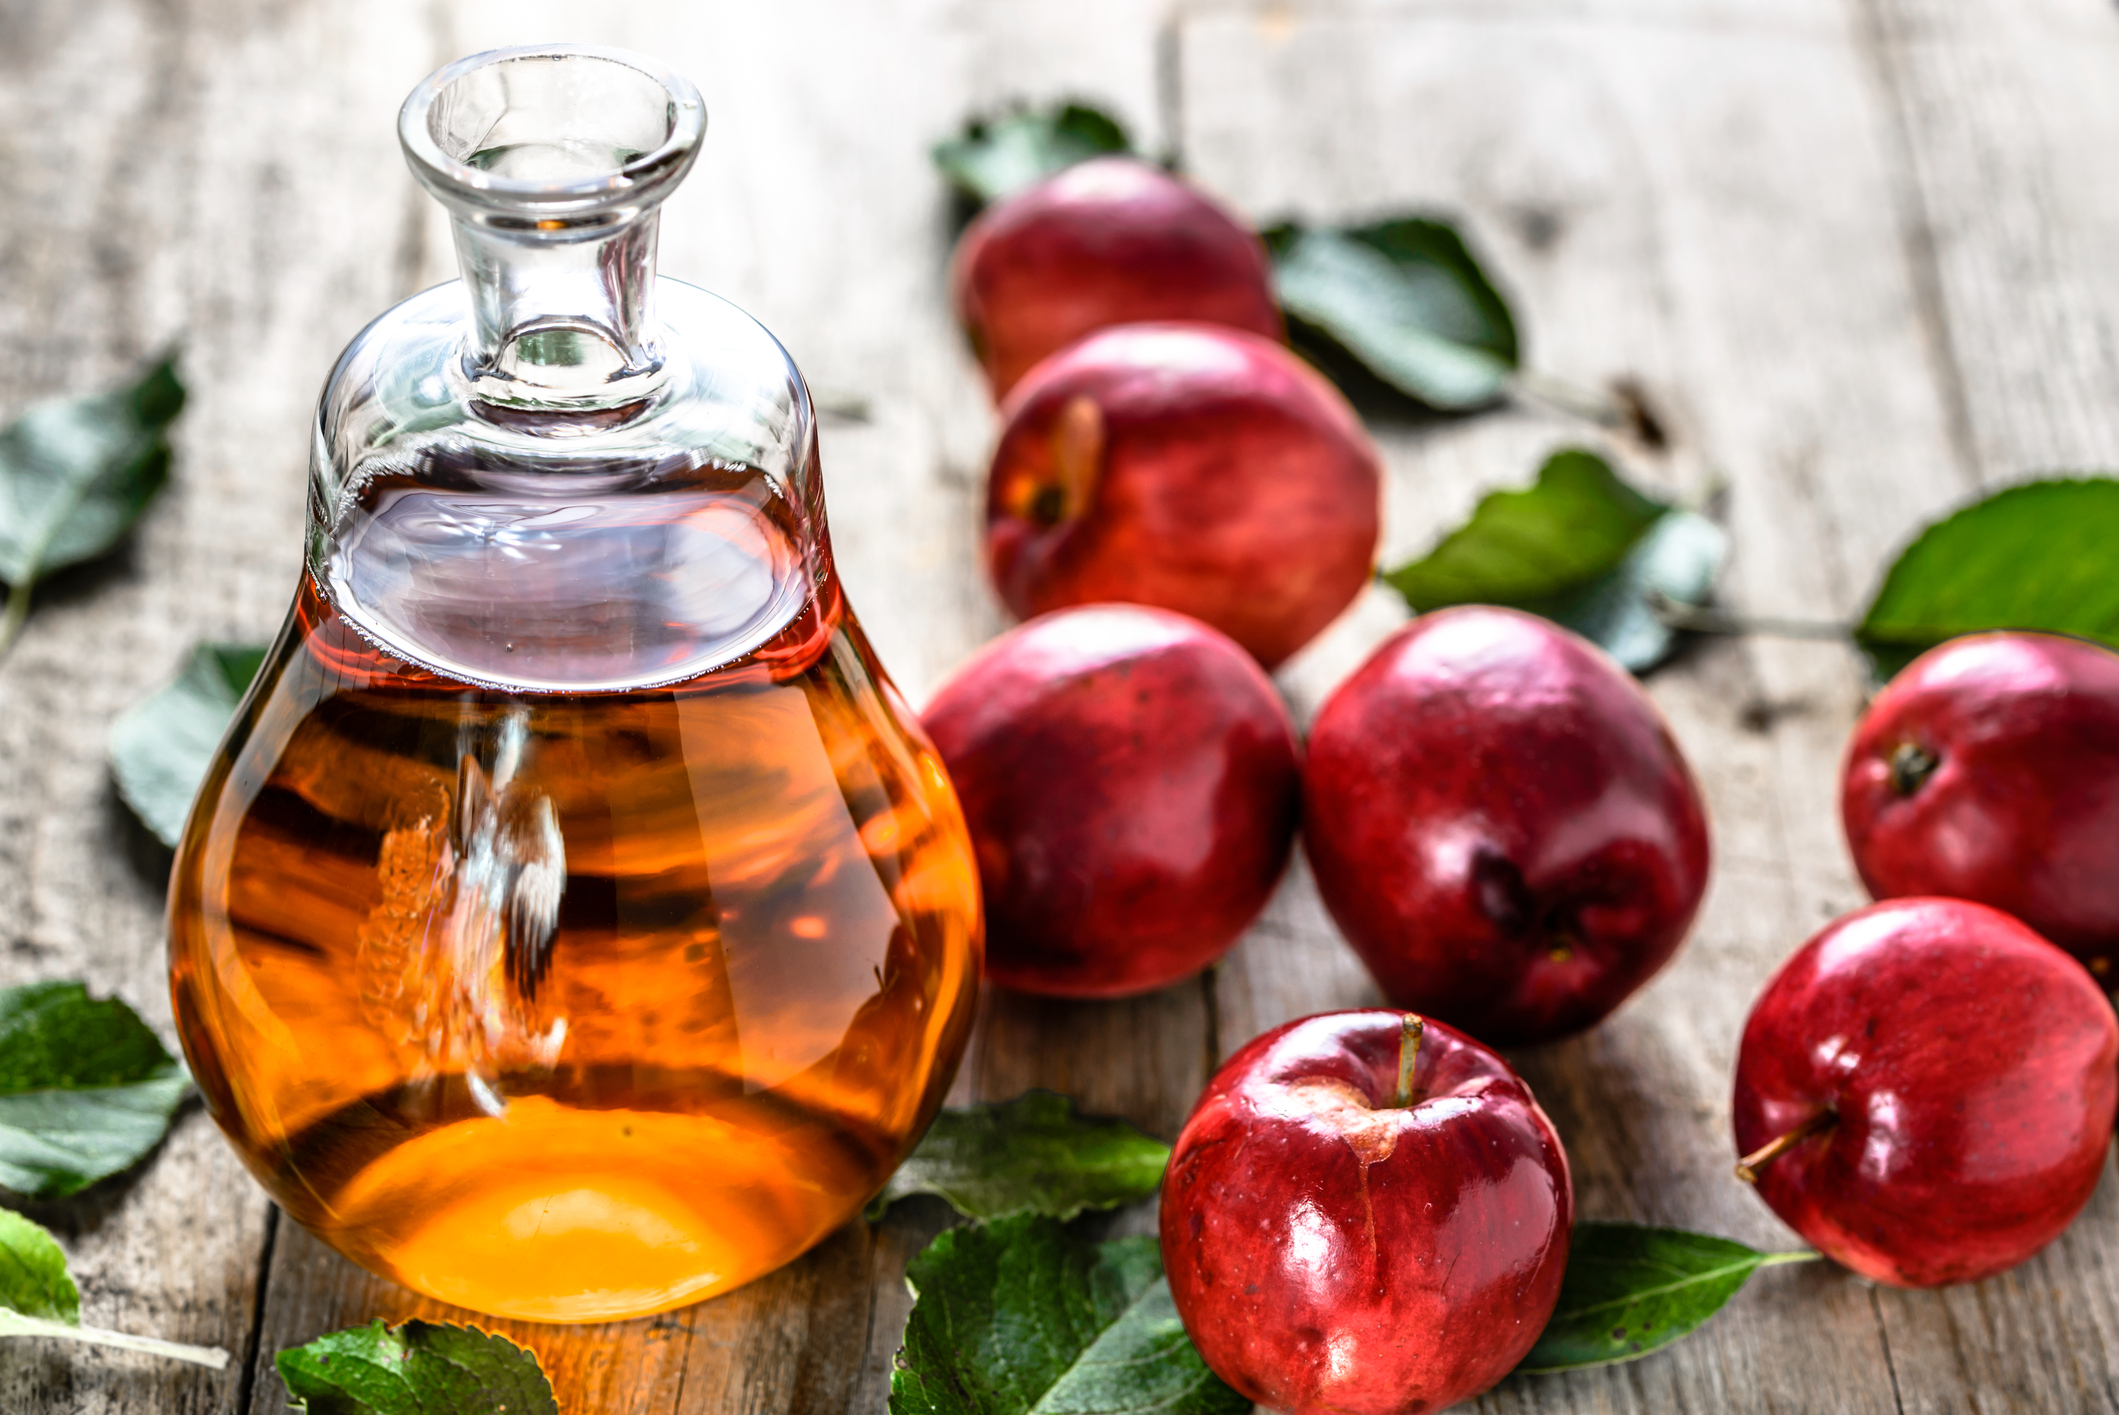 Apple cider vinegar or bottle of alcohol drink from fresh apples, organic food, healthy diet concept